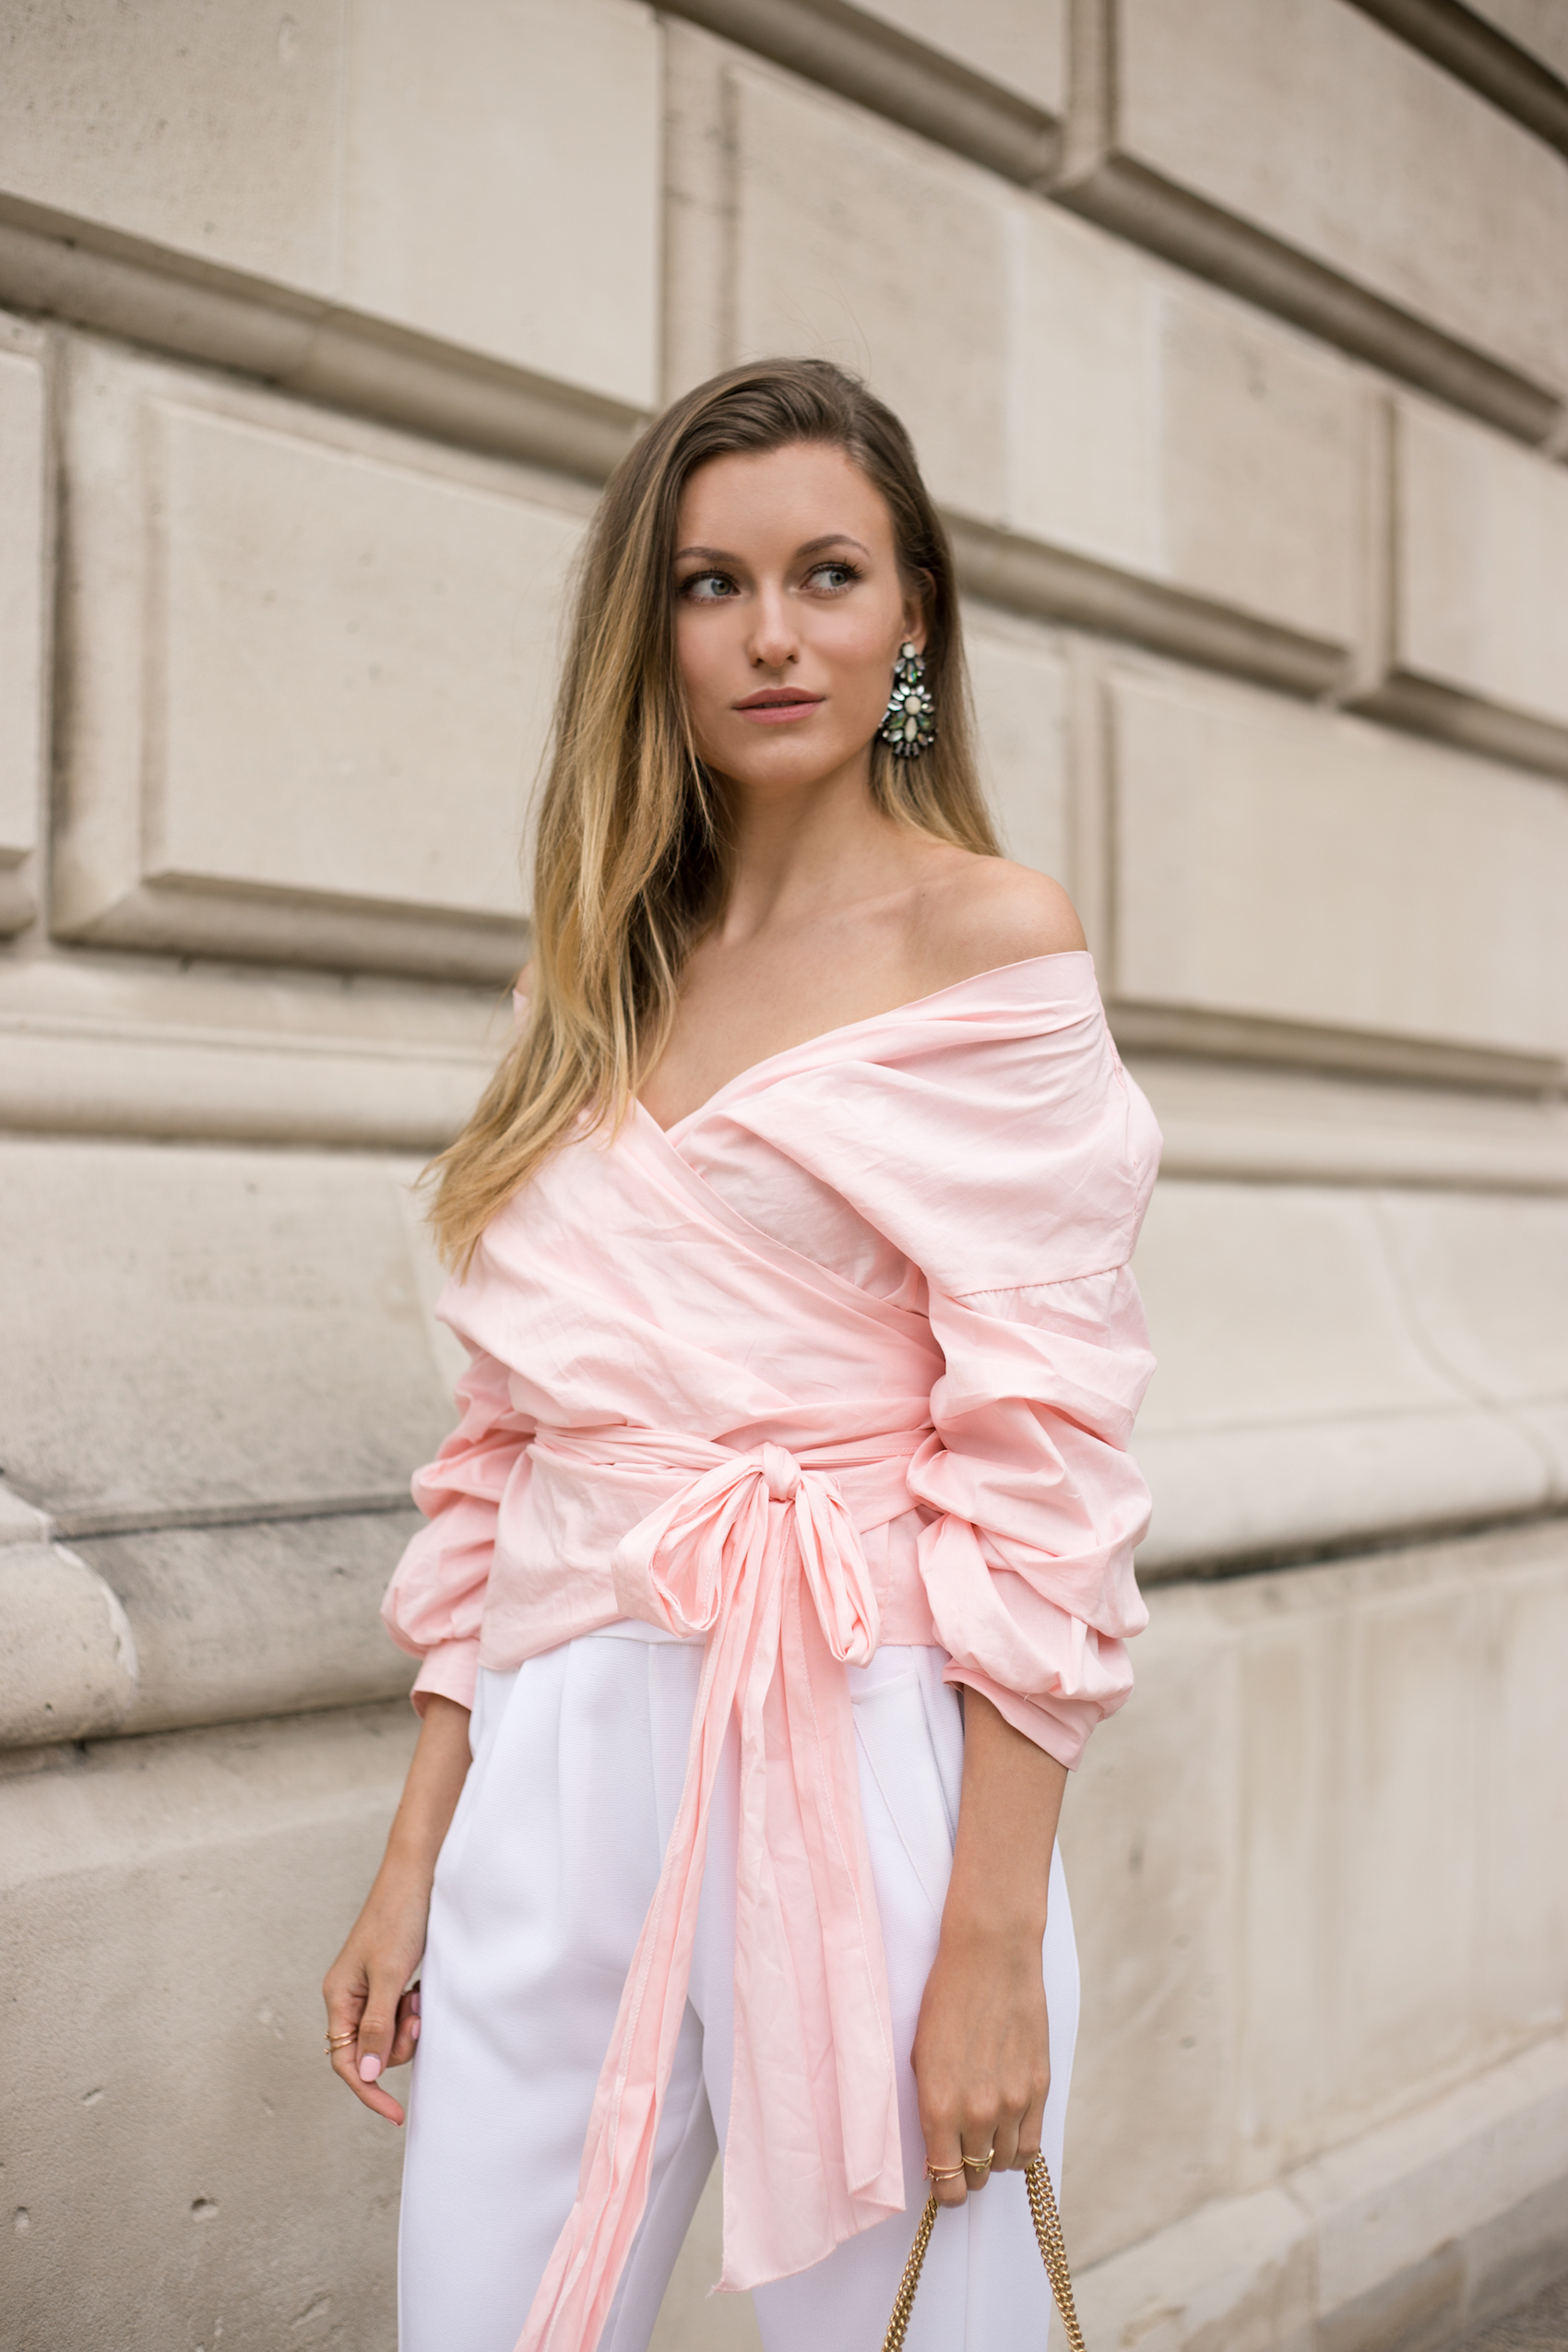 pink-puff-sleeve-bow-tie-outfit-livia-auer-IMG_7184